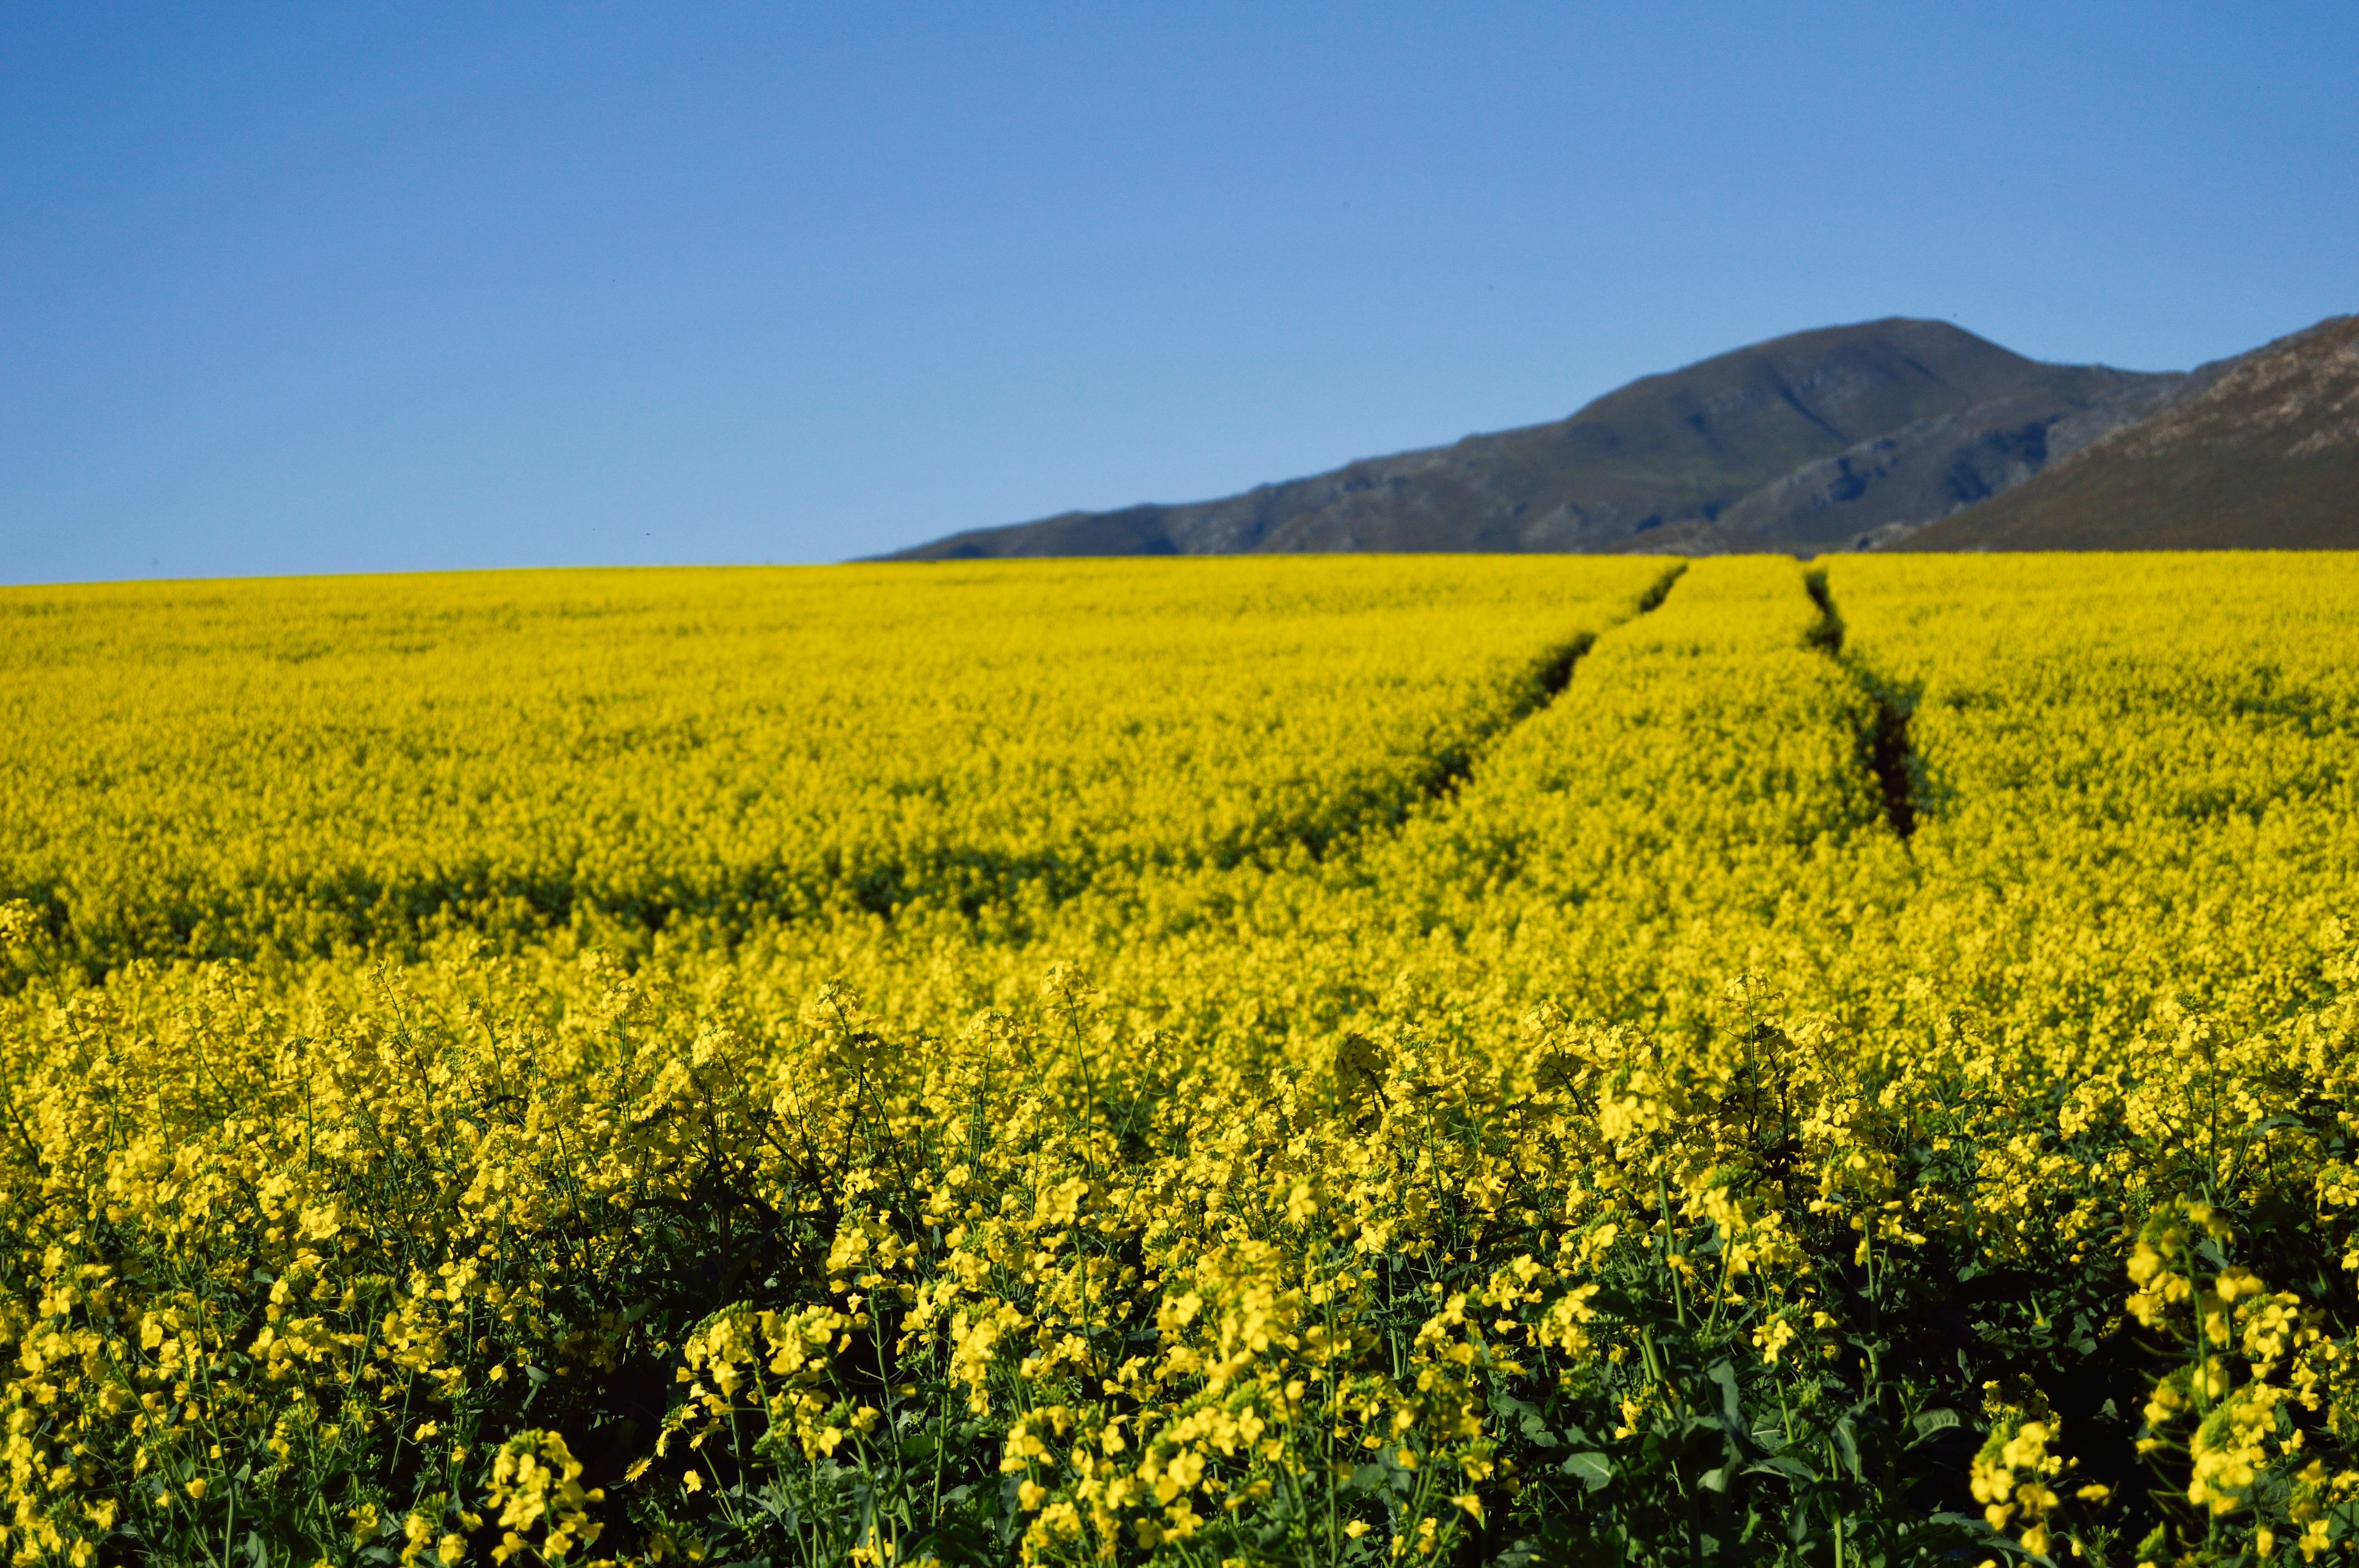 Blue Sky Hills And Yellow Flowers Image Free Stock Photo